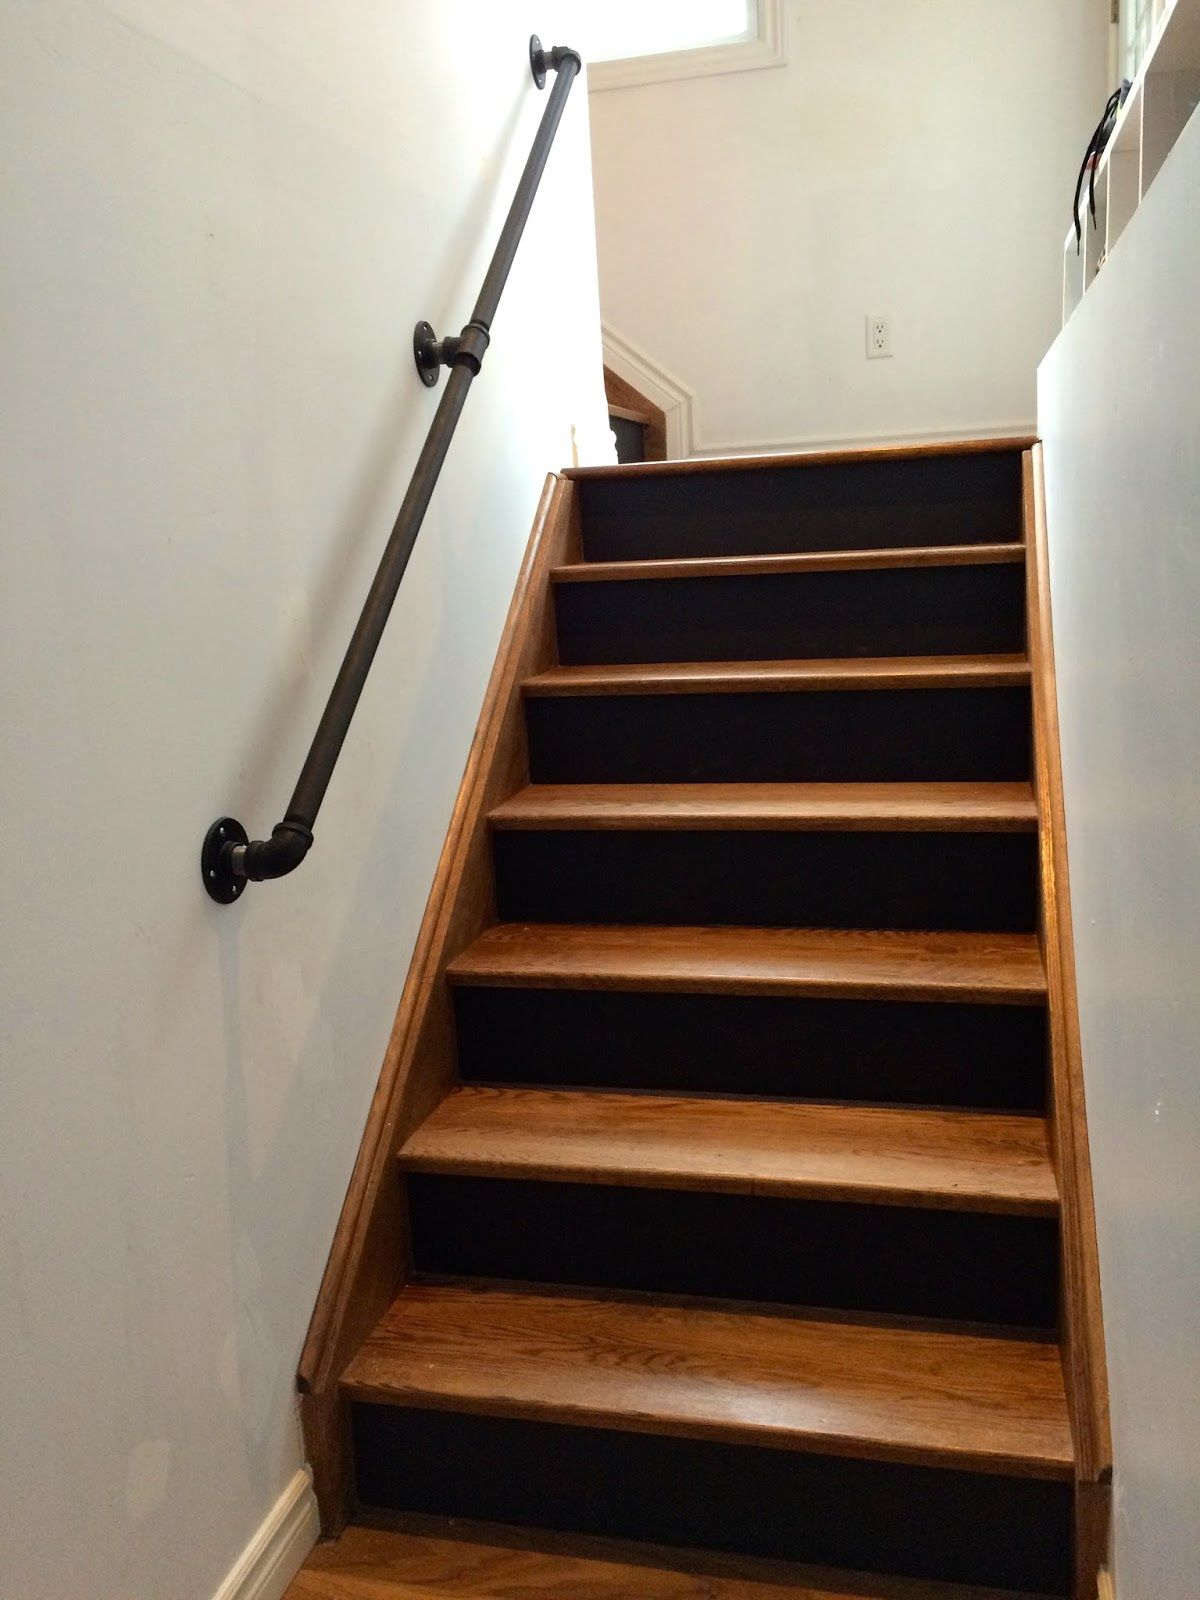 gas pipe railing, walnut stairs, black risers